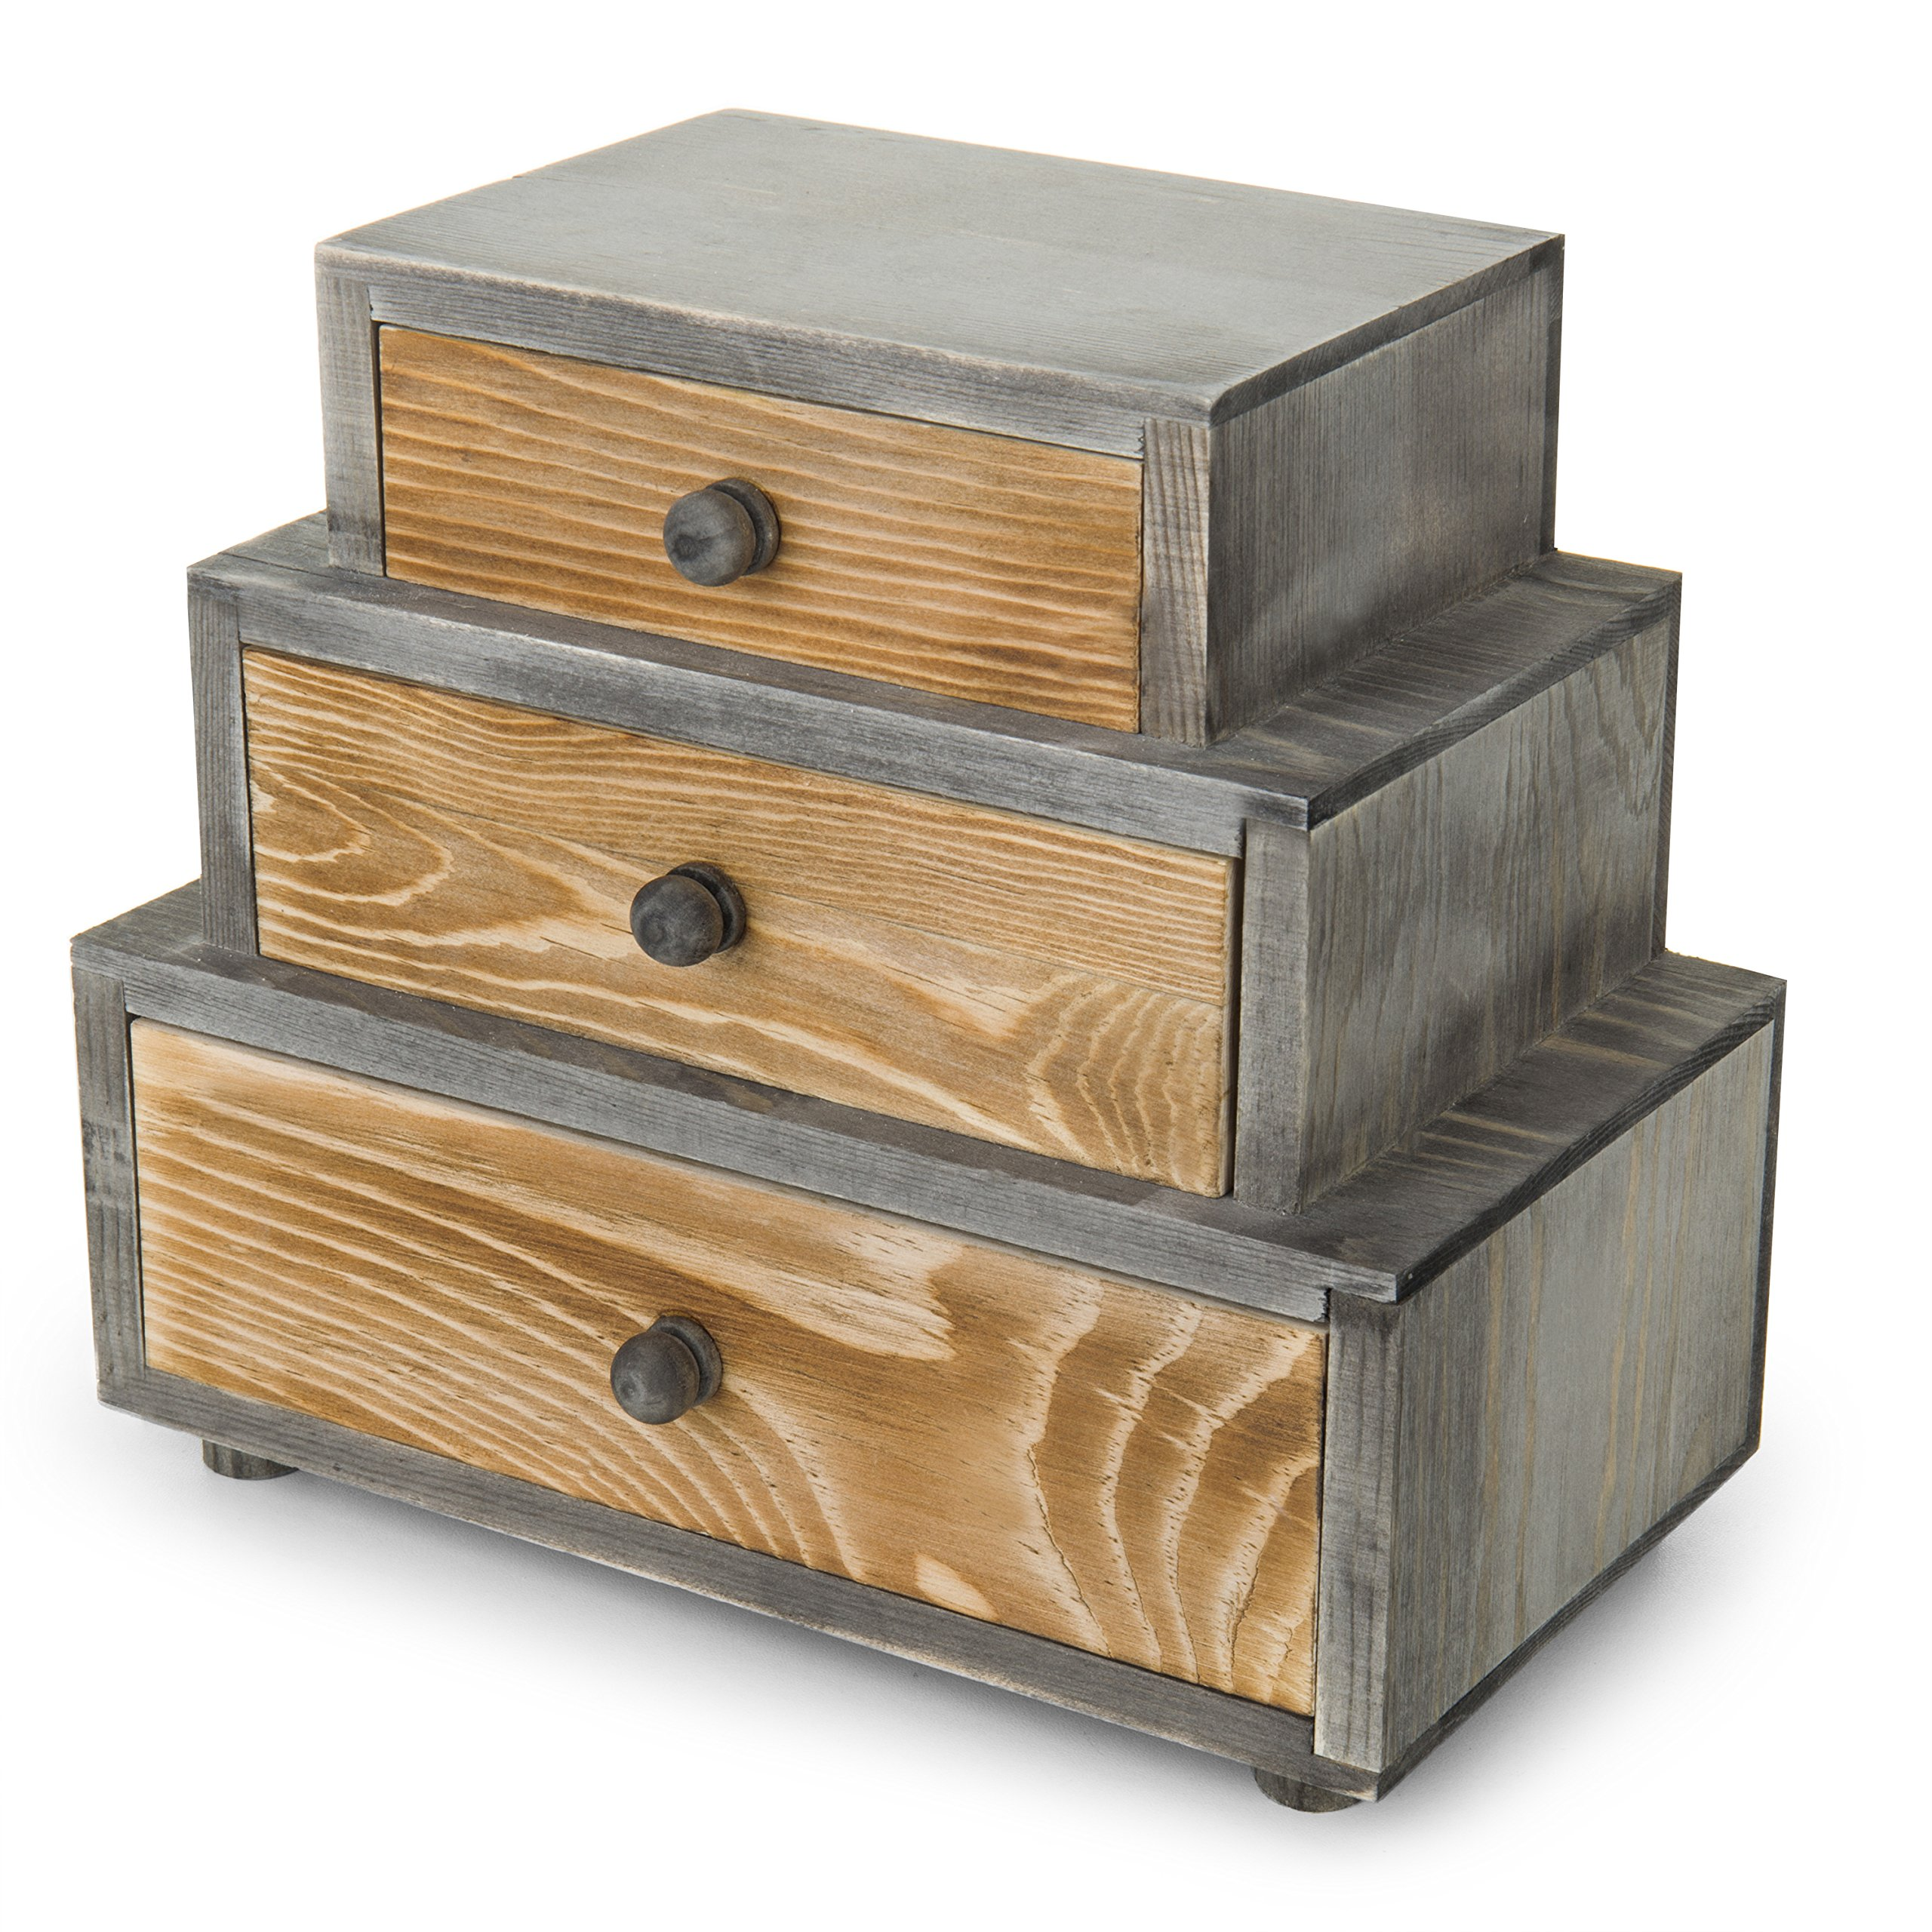 MyGift 3-Drawer Rustic Wood Office Storage Organizer by MyGift (Image #1)